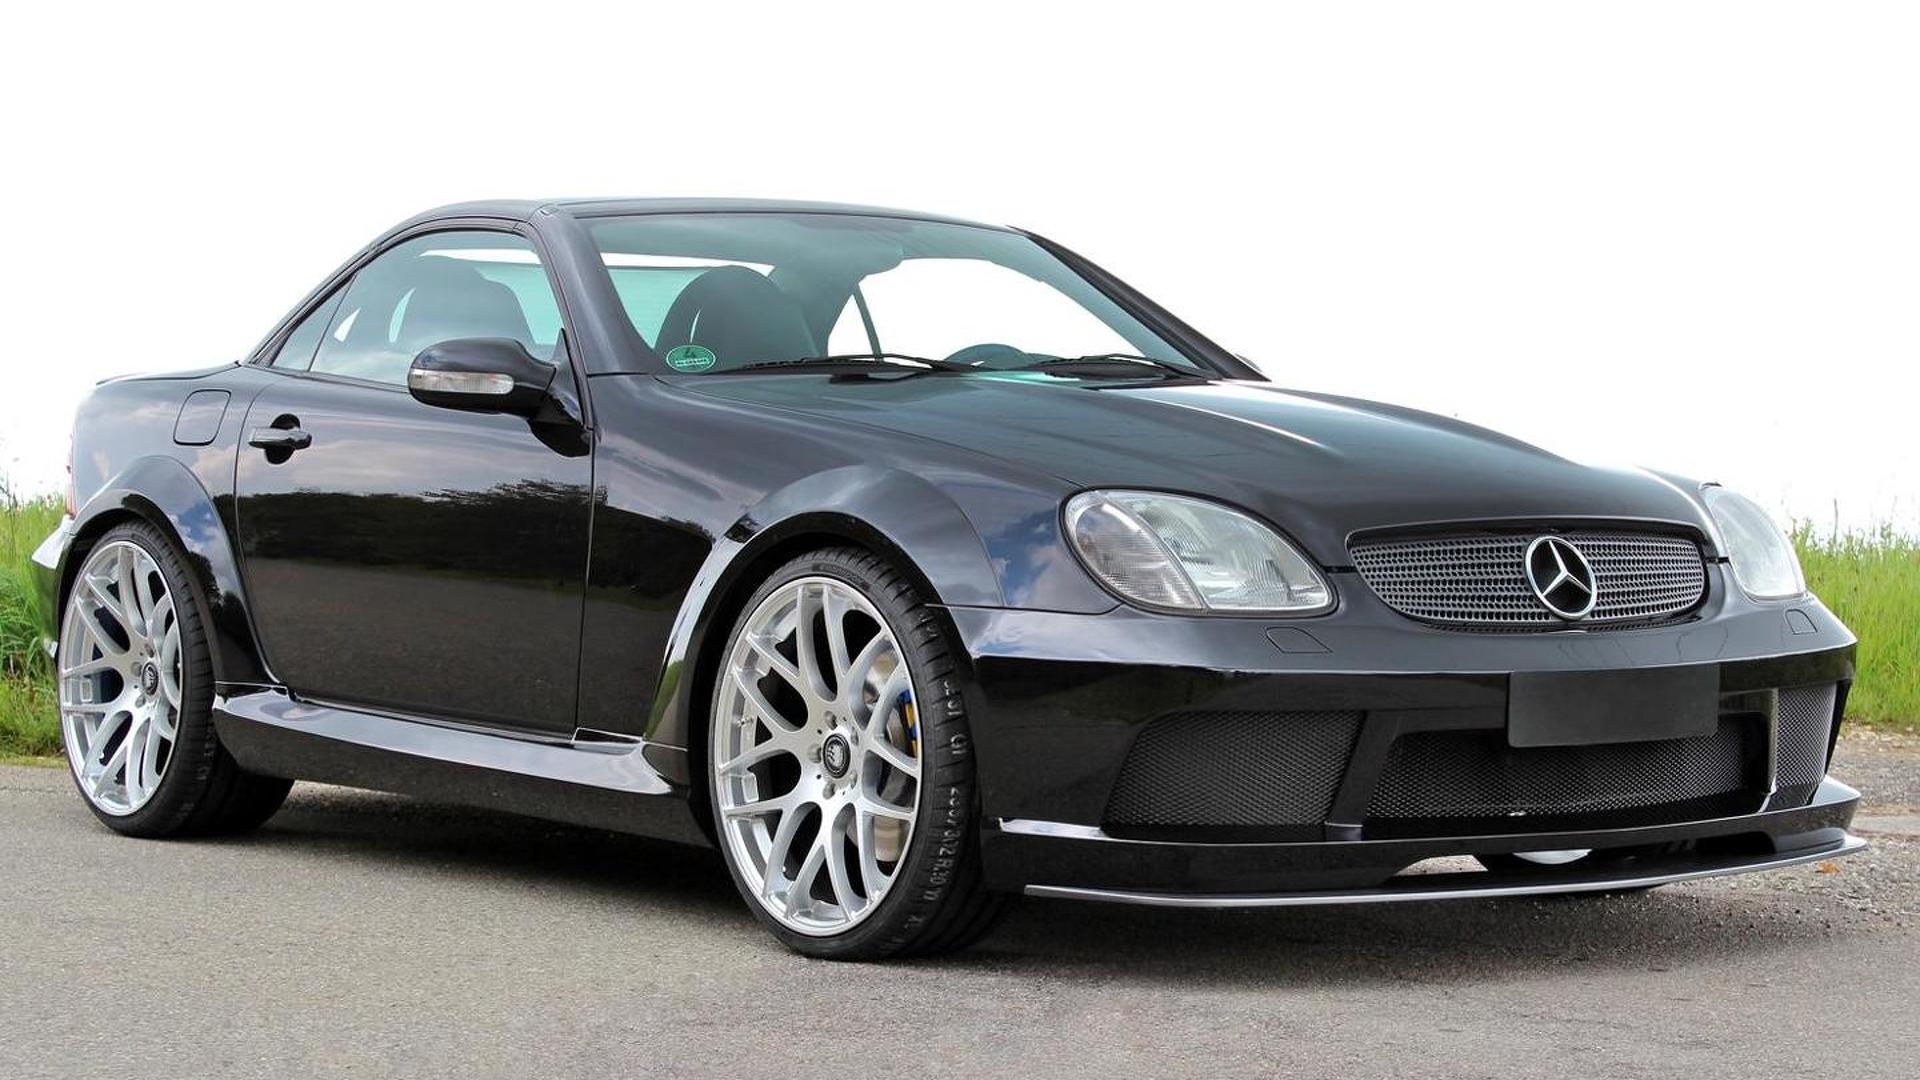 Lumma tuning freshens up mercedes benz slk 32 amg r170 for Mercedes benz tuning